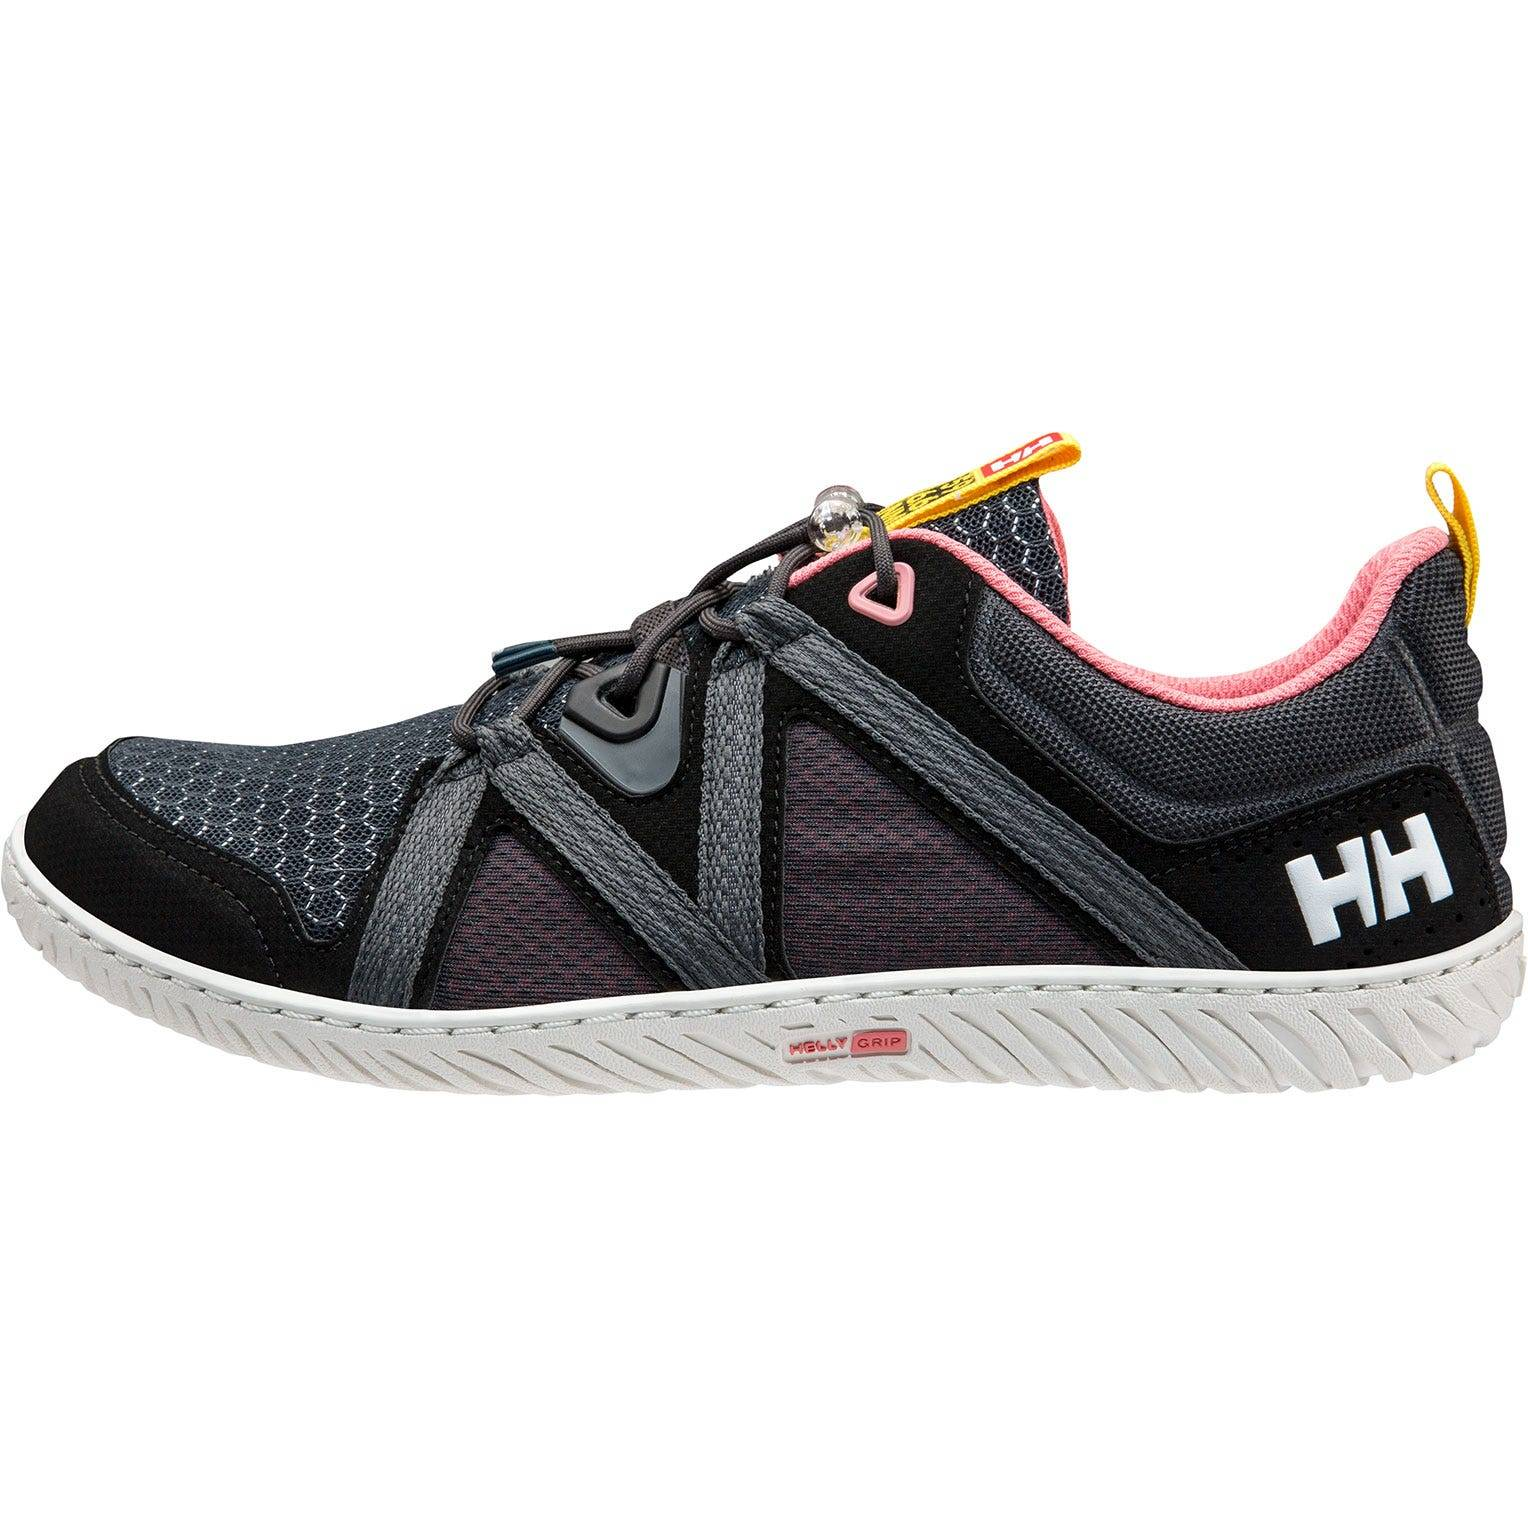 Helly Hansen W Hp Foil F1 Womens Sailing Shoe Black 38/7